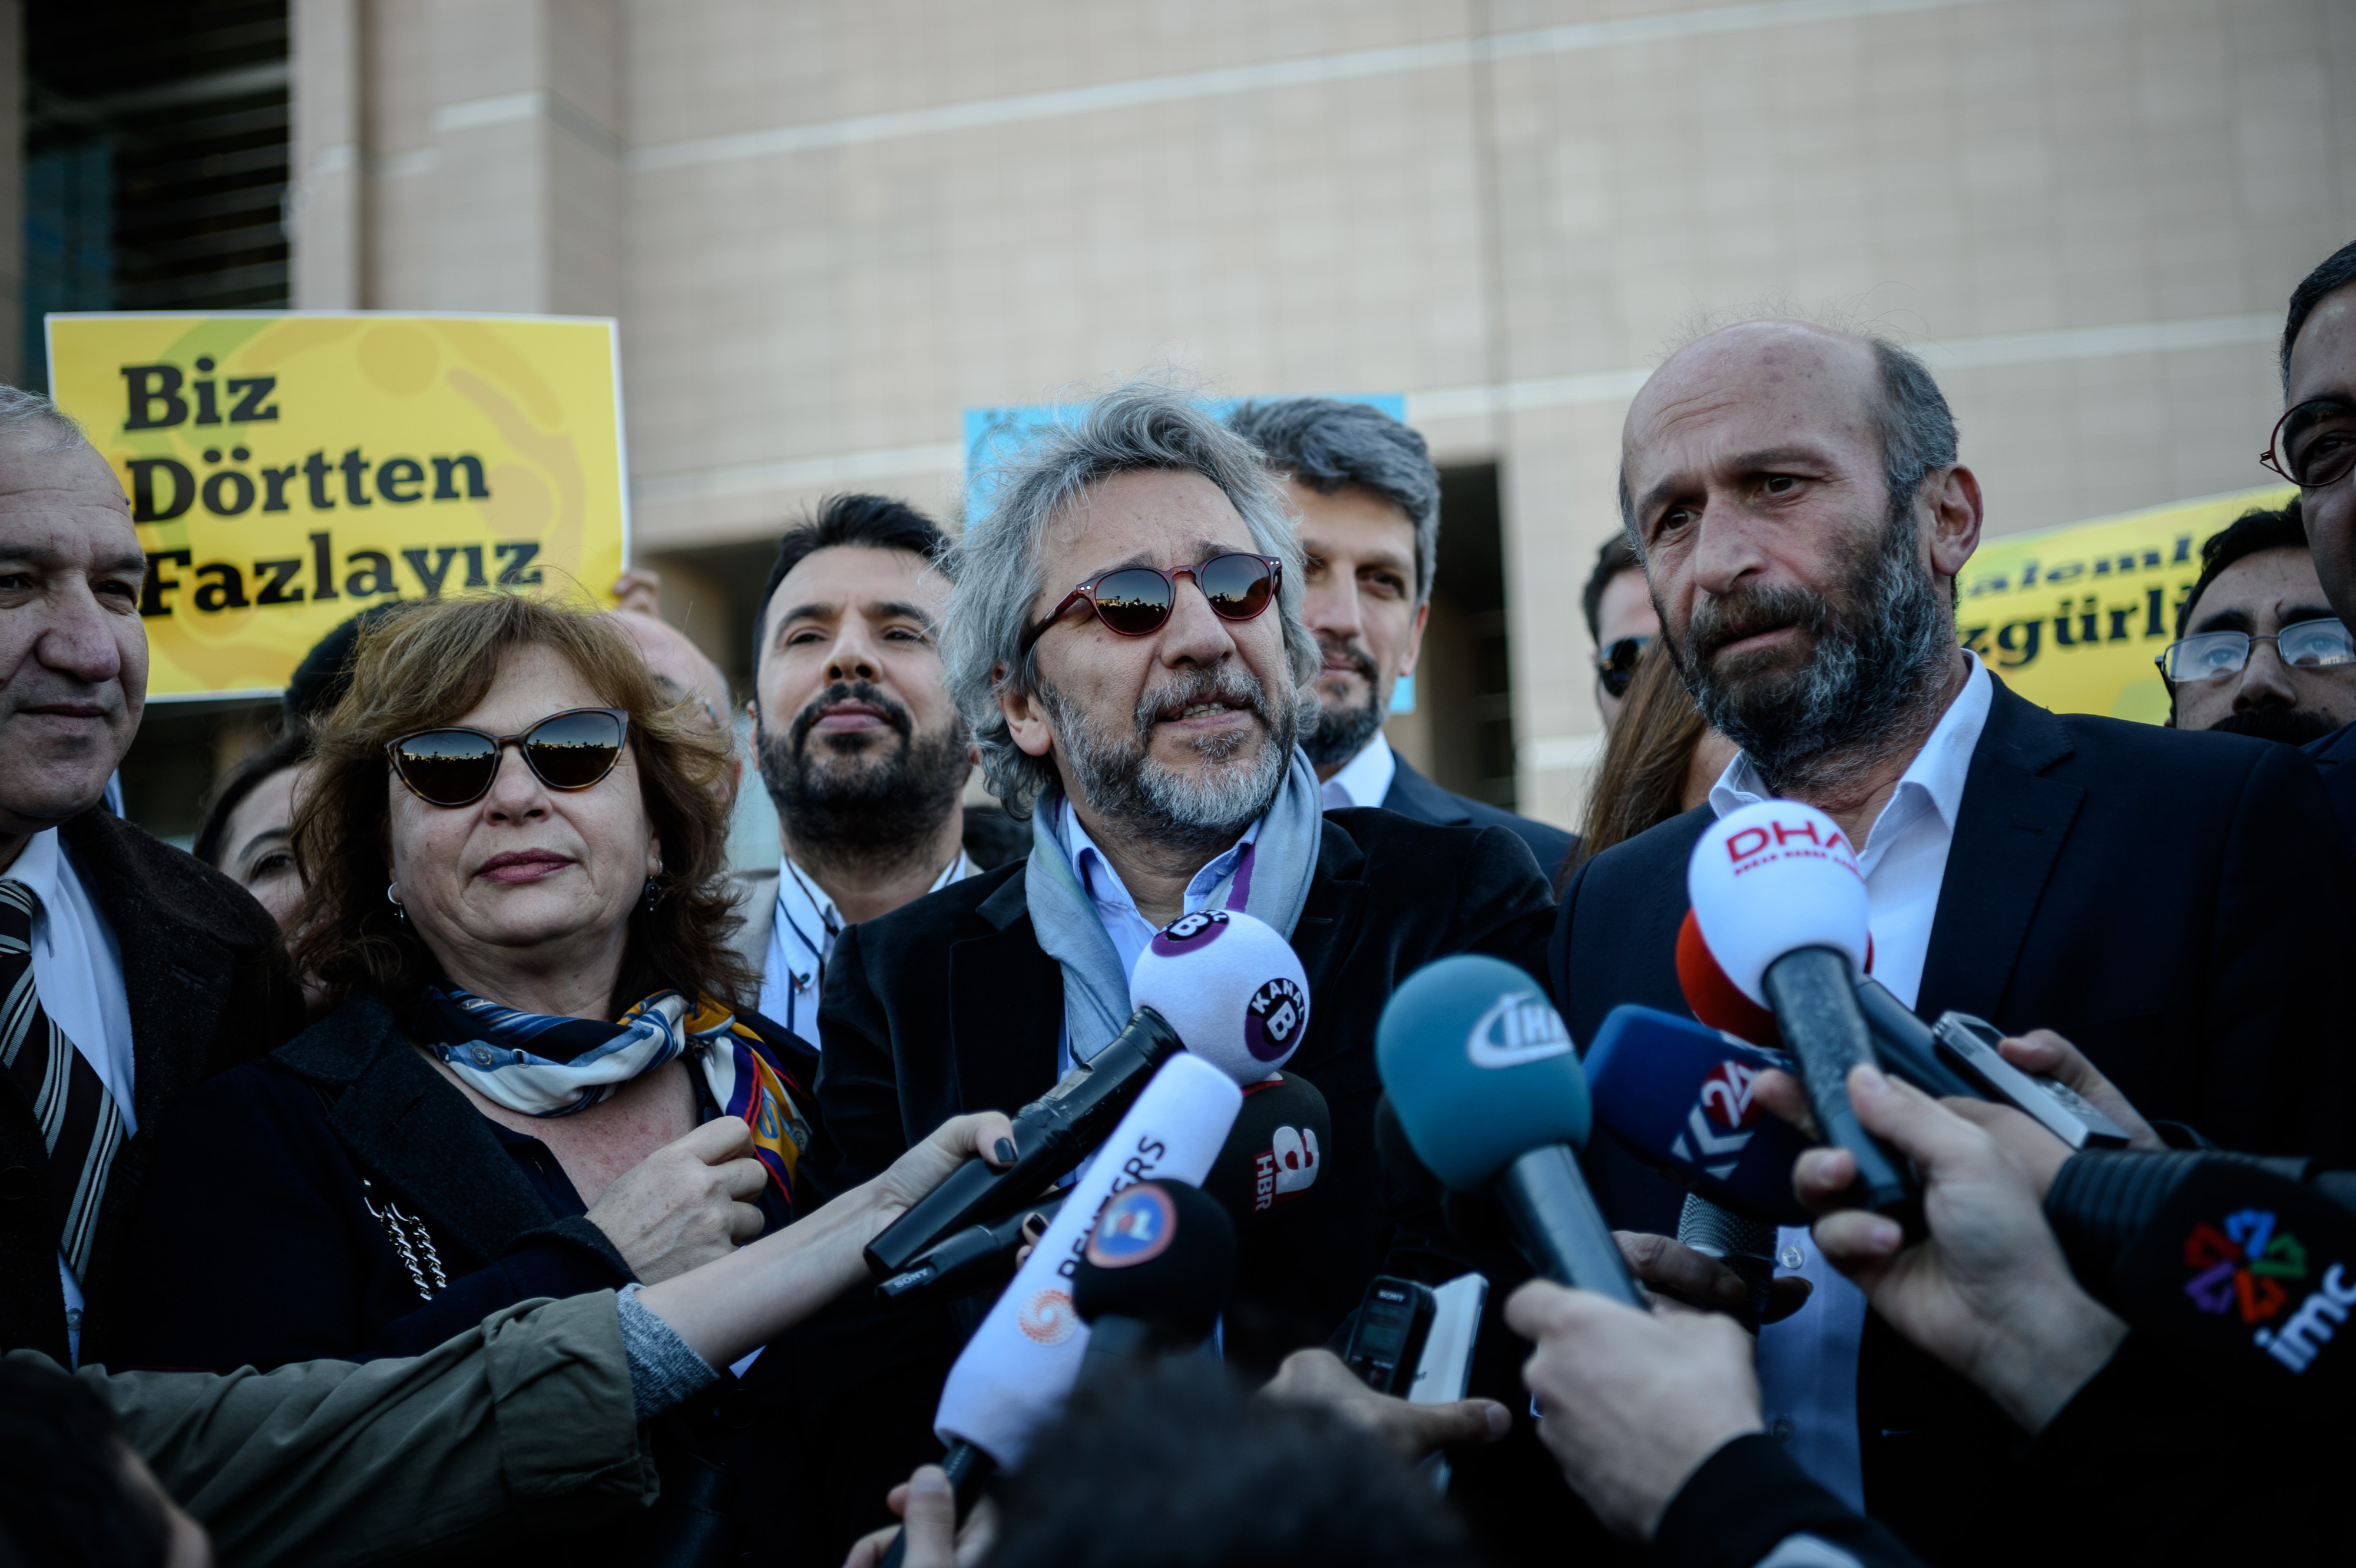 Editor-in-chief of Turkish newspaper Cumhuriyet daily Can Dundar (C) and the newspaper bureau chief in Ankara Erdem Gul (R) arrive to the Istanbul courthouse for their trial on April 22, 2016 in istanbul.   Cumhuriyet daily's editor-in-chief Can Dundar and Ankara bureau chief Erdem Gul face possible life terms on spying charges over a news report accusing President Recep Tayyip Erdogan's government of seeking to illicitly deliver arms bound for neighbouring Syria. / AFP / OZAN KOSE        (Photo credit should read OZAN KOSE/AFP/Getty Images)